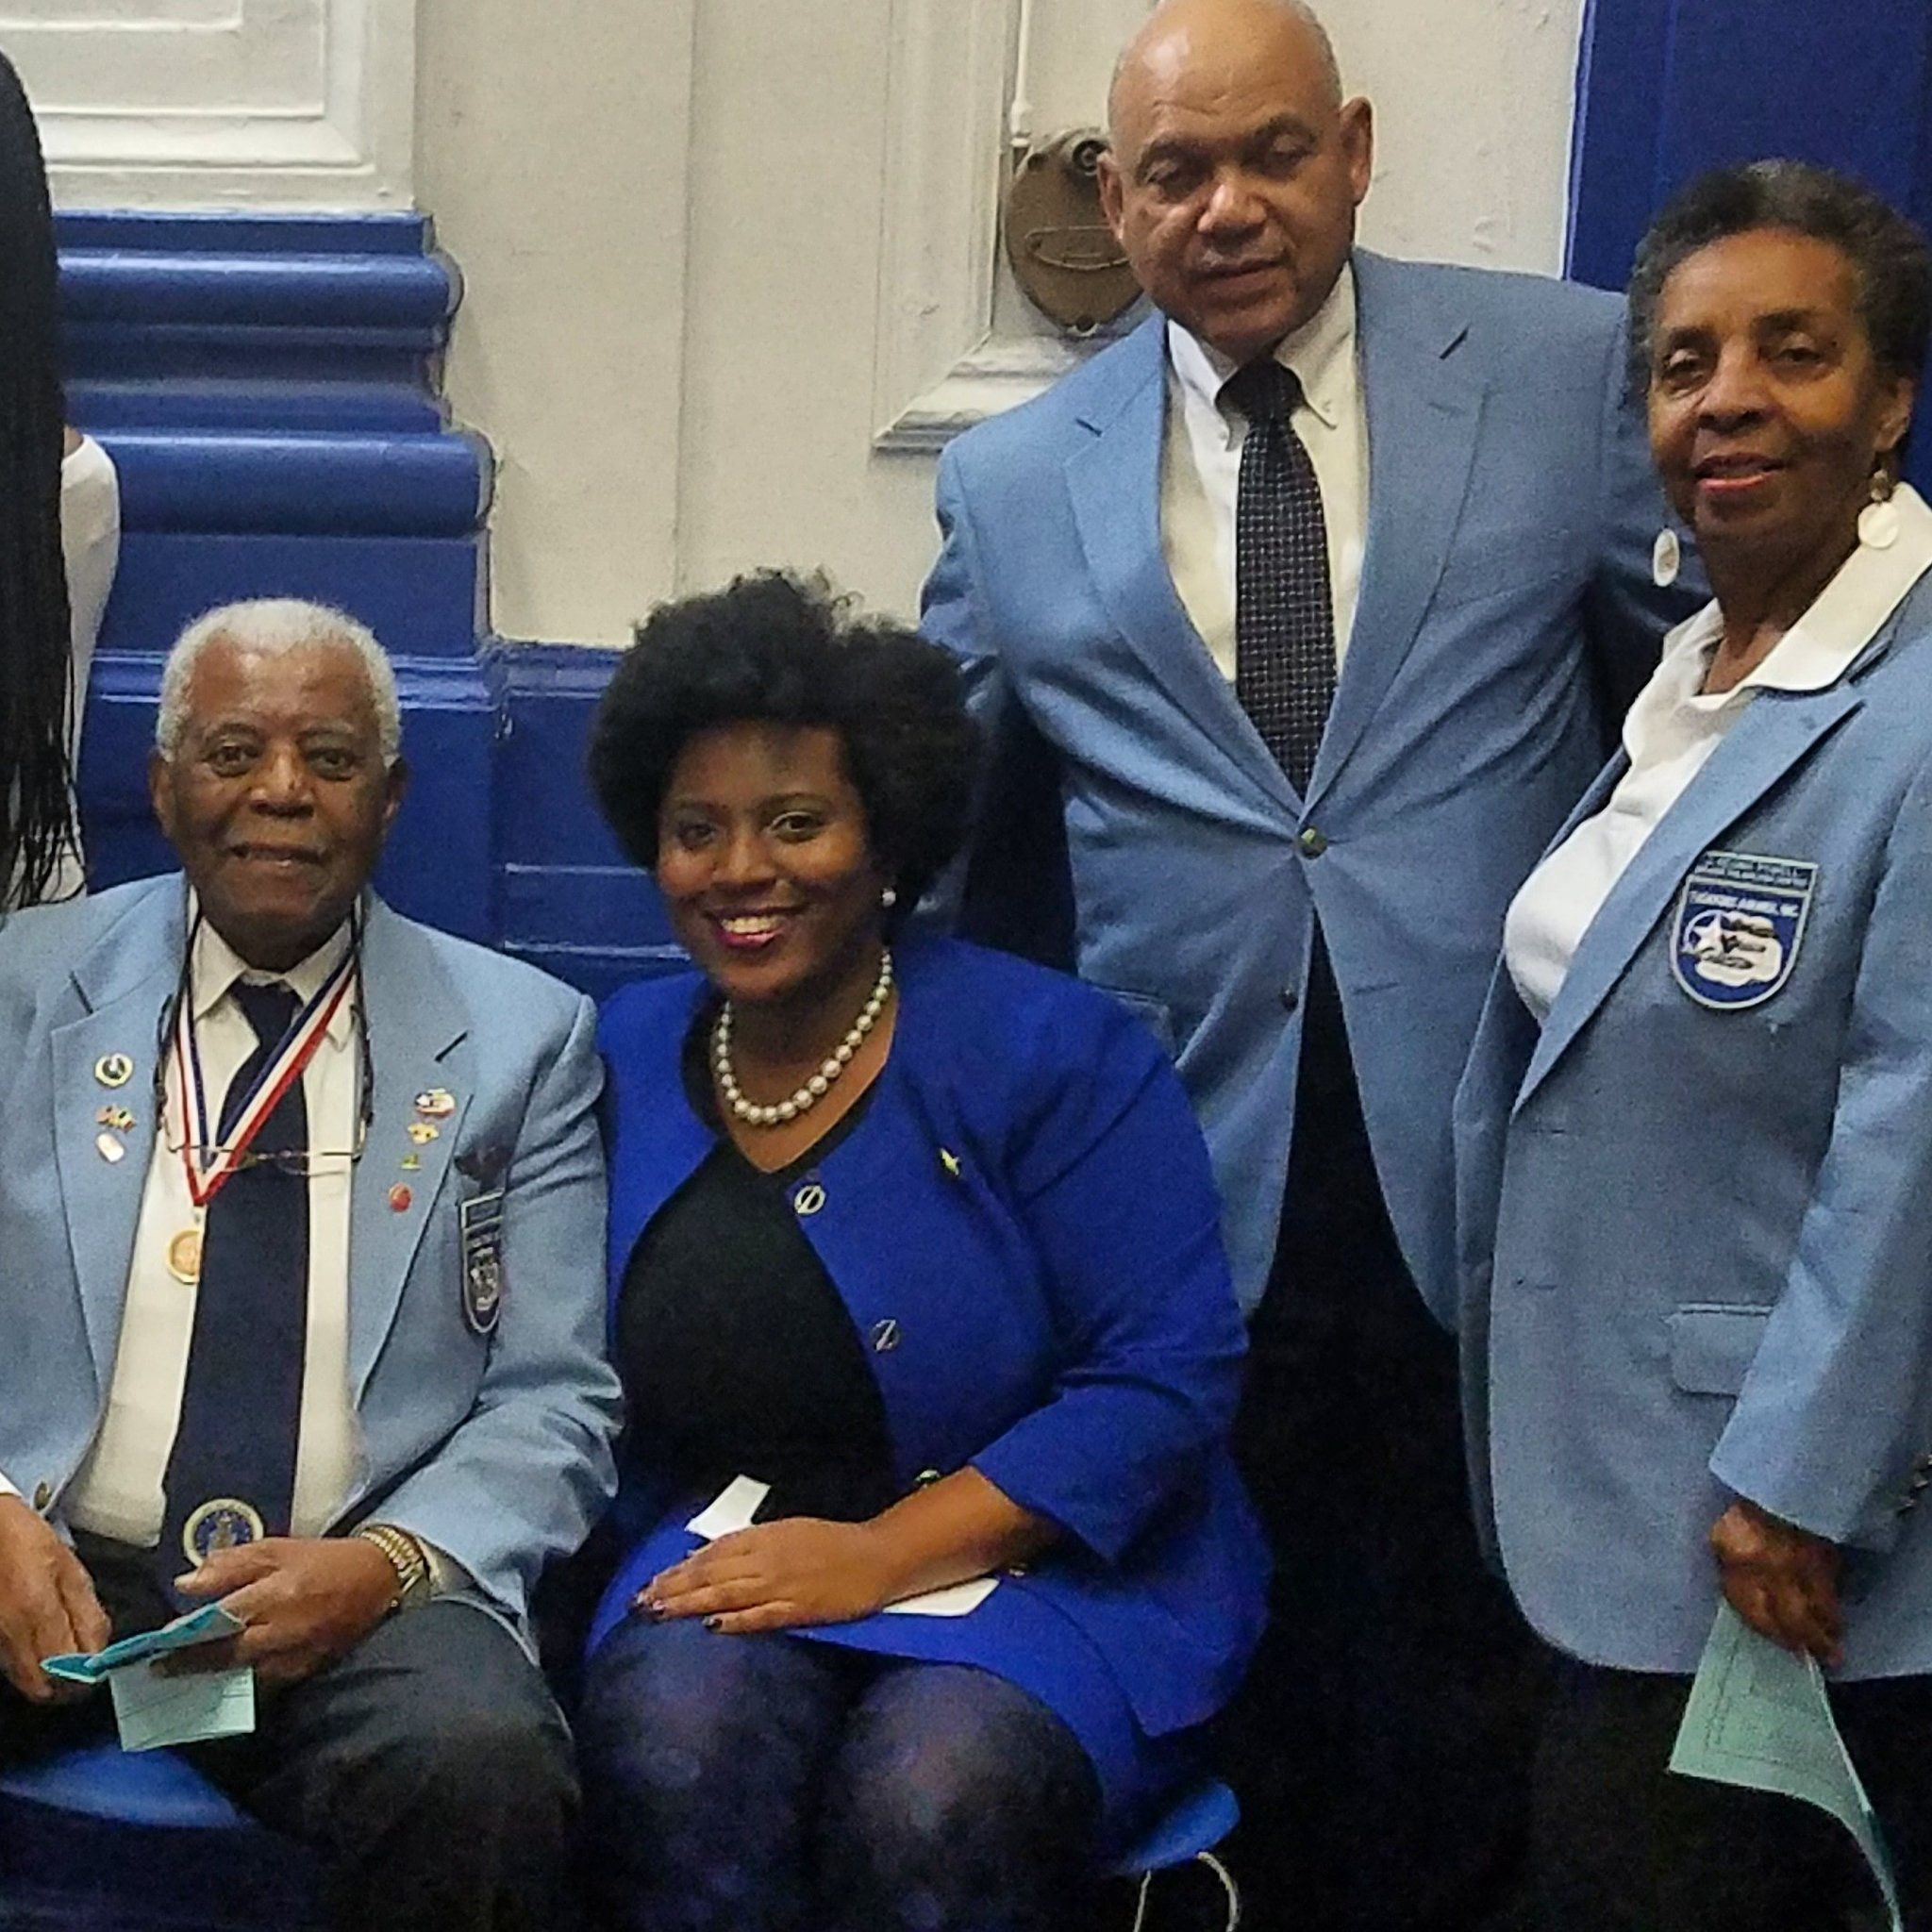 Tuskegee Airmen celebrating students achievement at Hardy Williams High Mastery  Charter School in Philadelphia. The